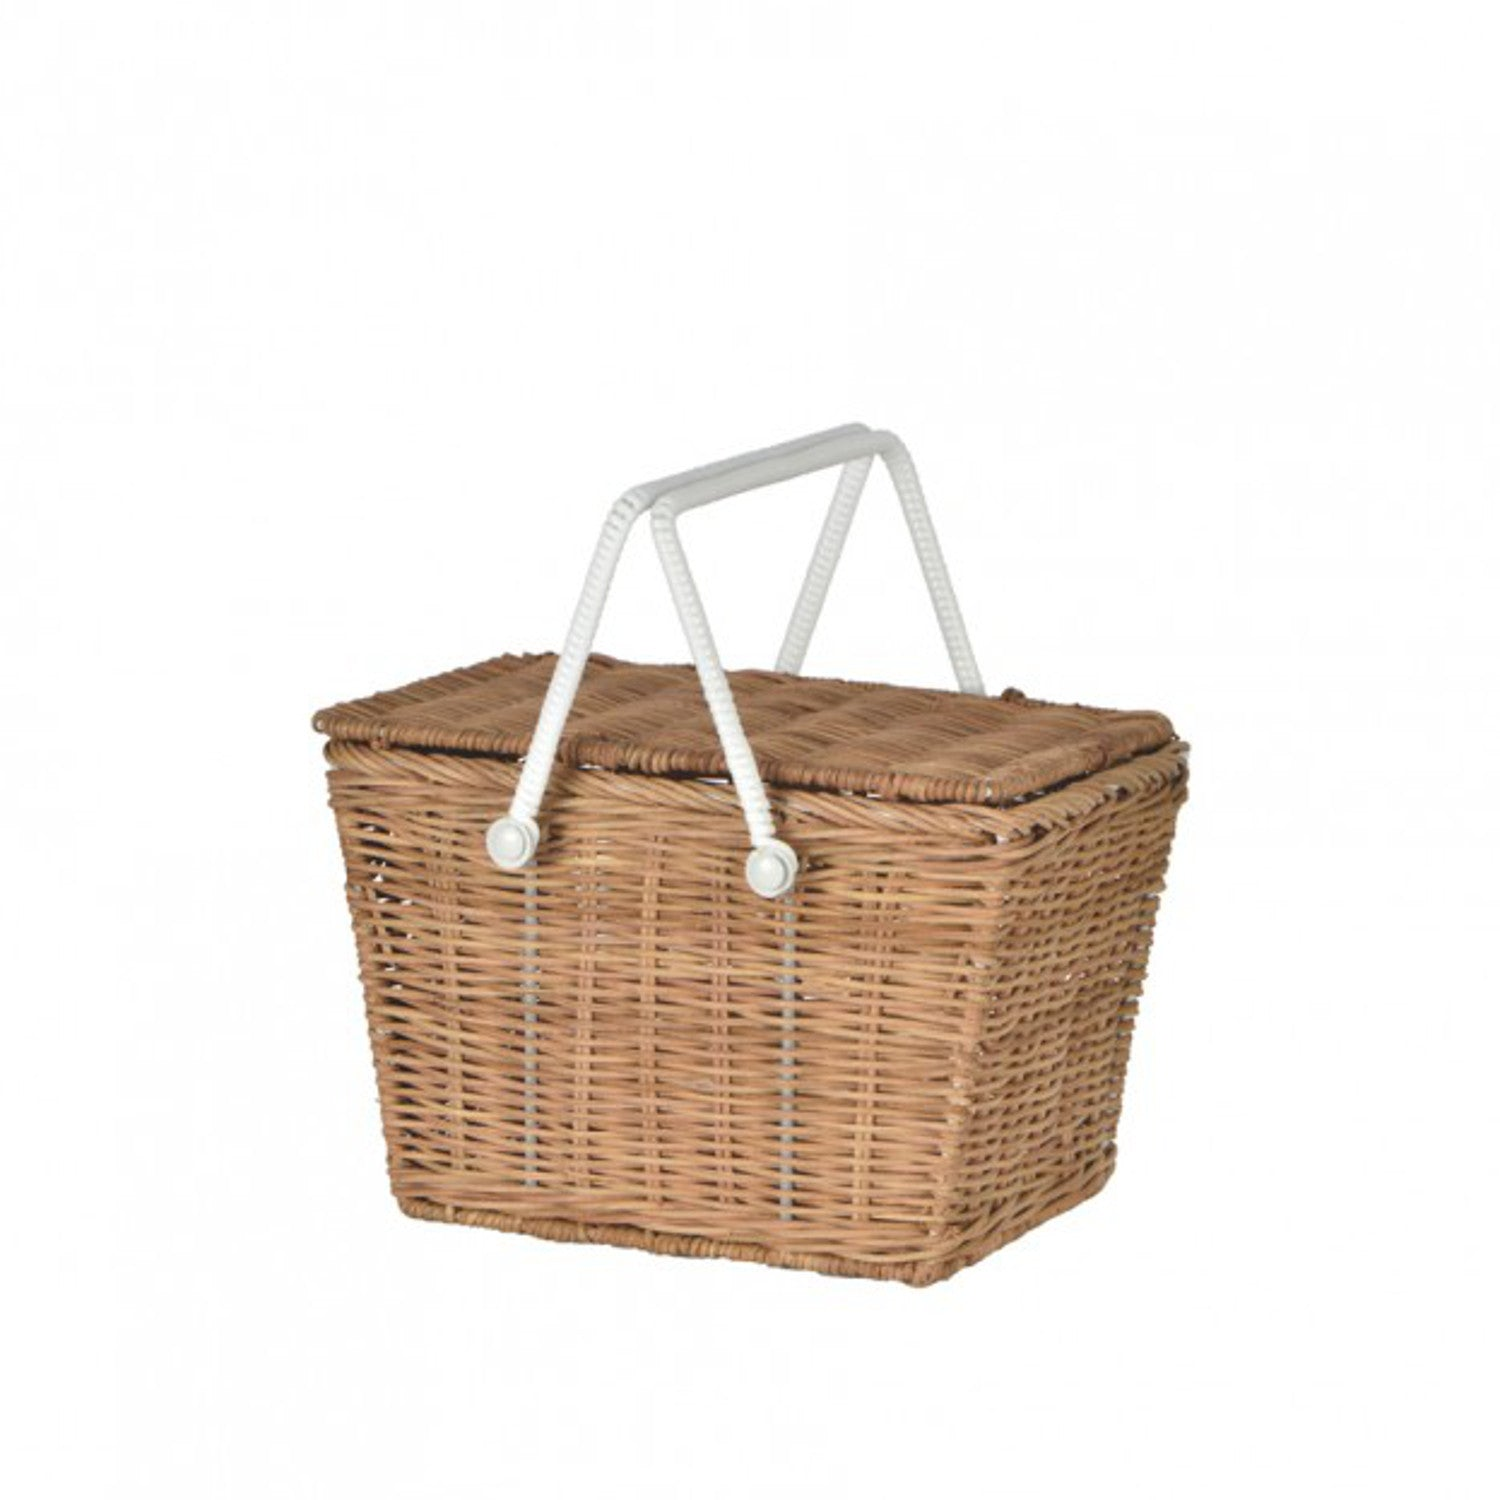 Olli Ella Piki Basket -Natural